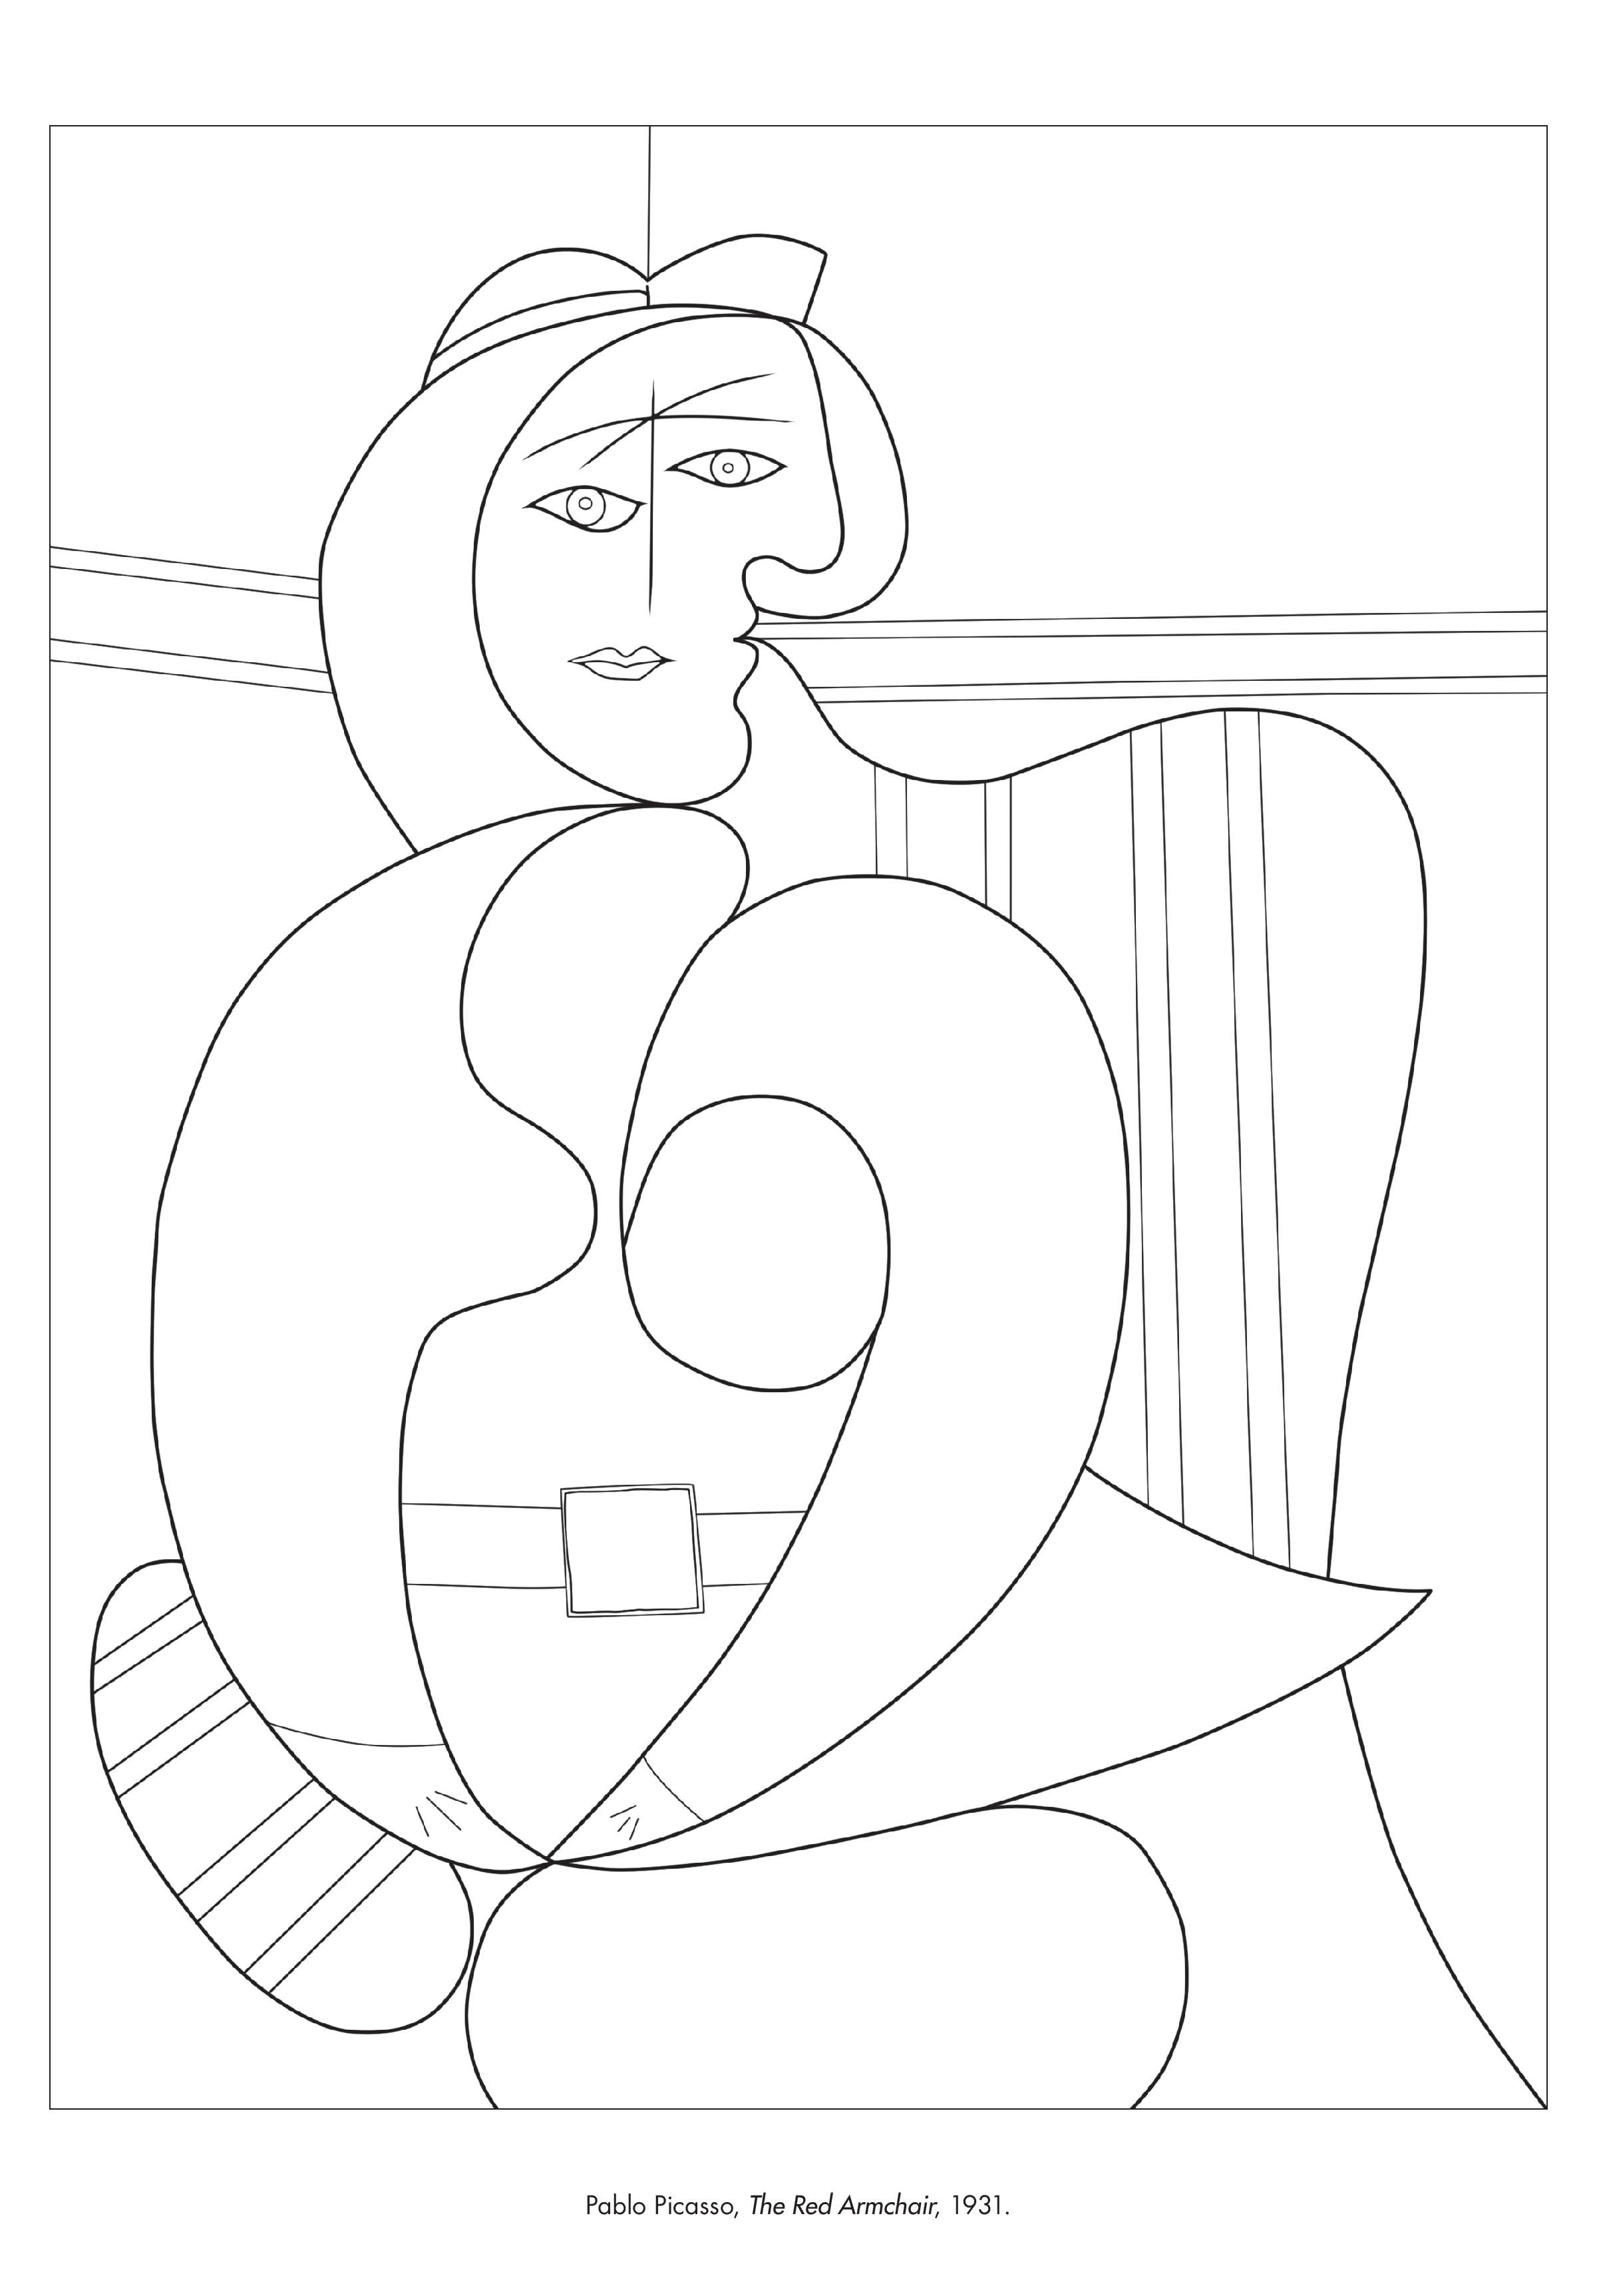 Coloring Page Of The Red Armchair By Pablo Picasso In Color The Classics From The Art Institut Picasso Coloring Cool Coloring Pages Paw Patrol Coloring Pages [ 3450 x 2400 Pixel ]